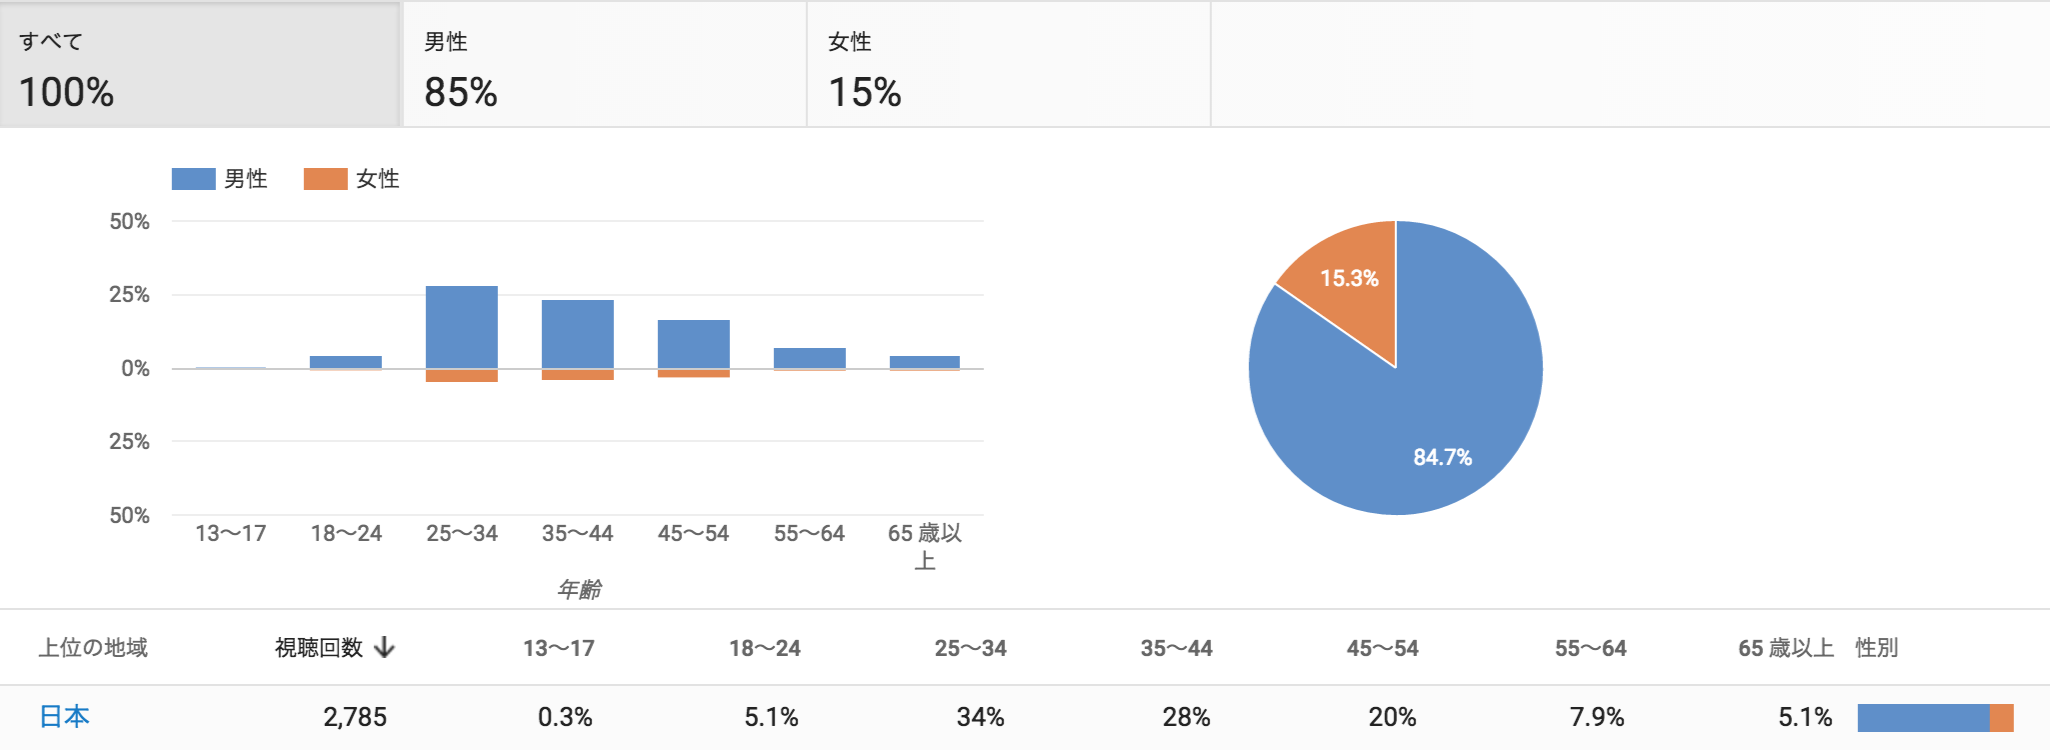 YouTubeAnalytics ユーザー層